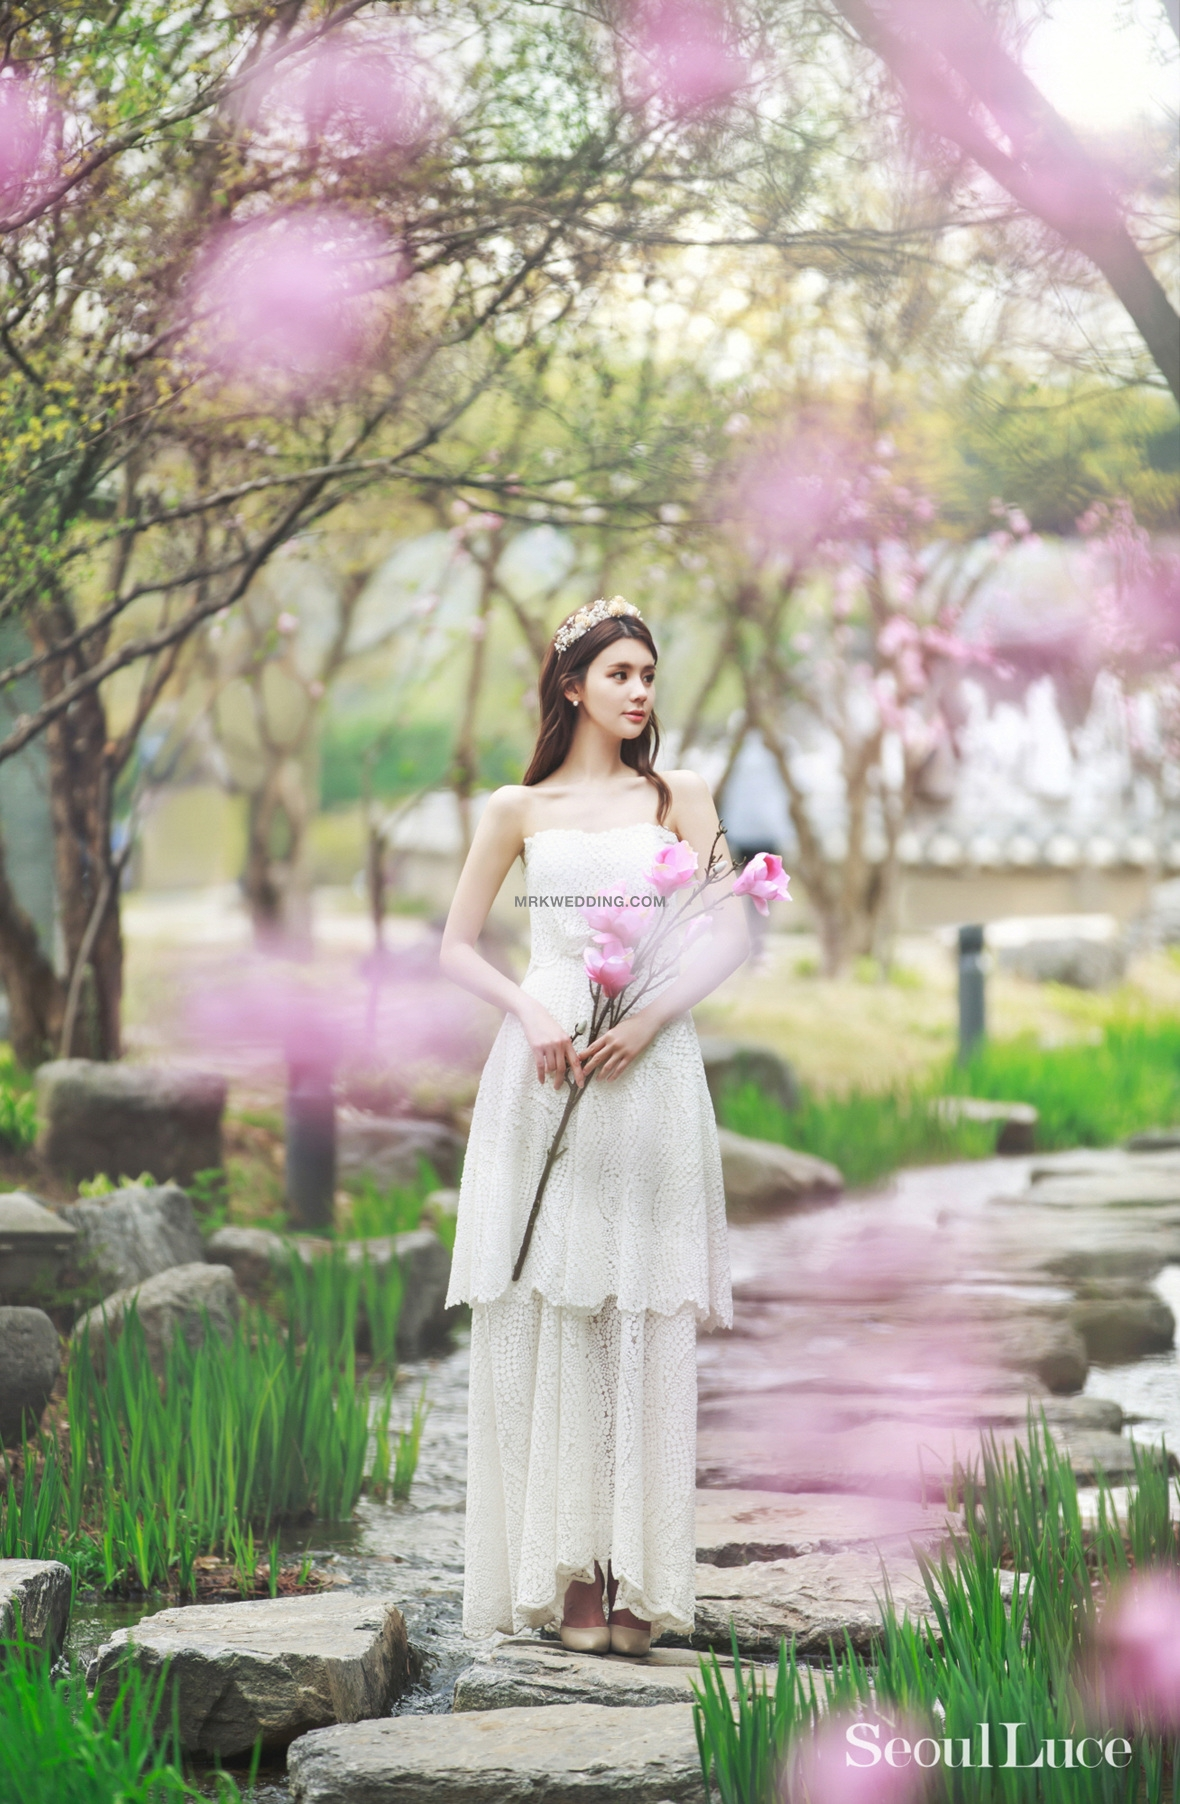 Korea pre wedding photography (134).jpg